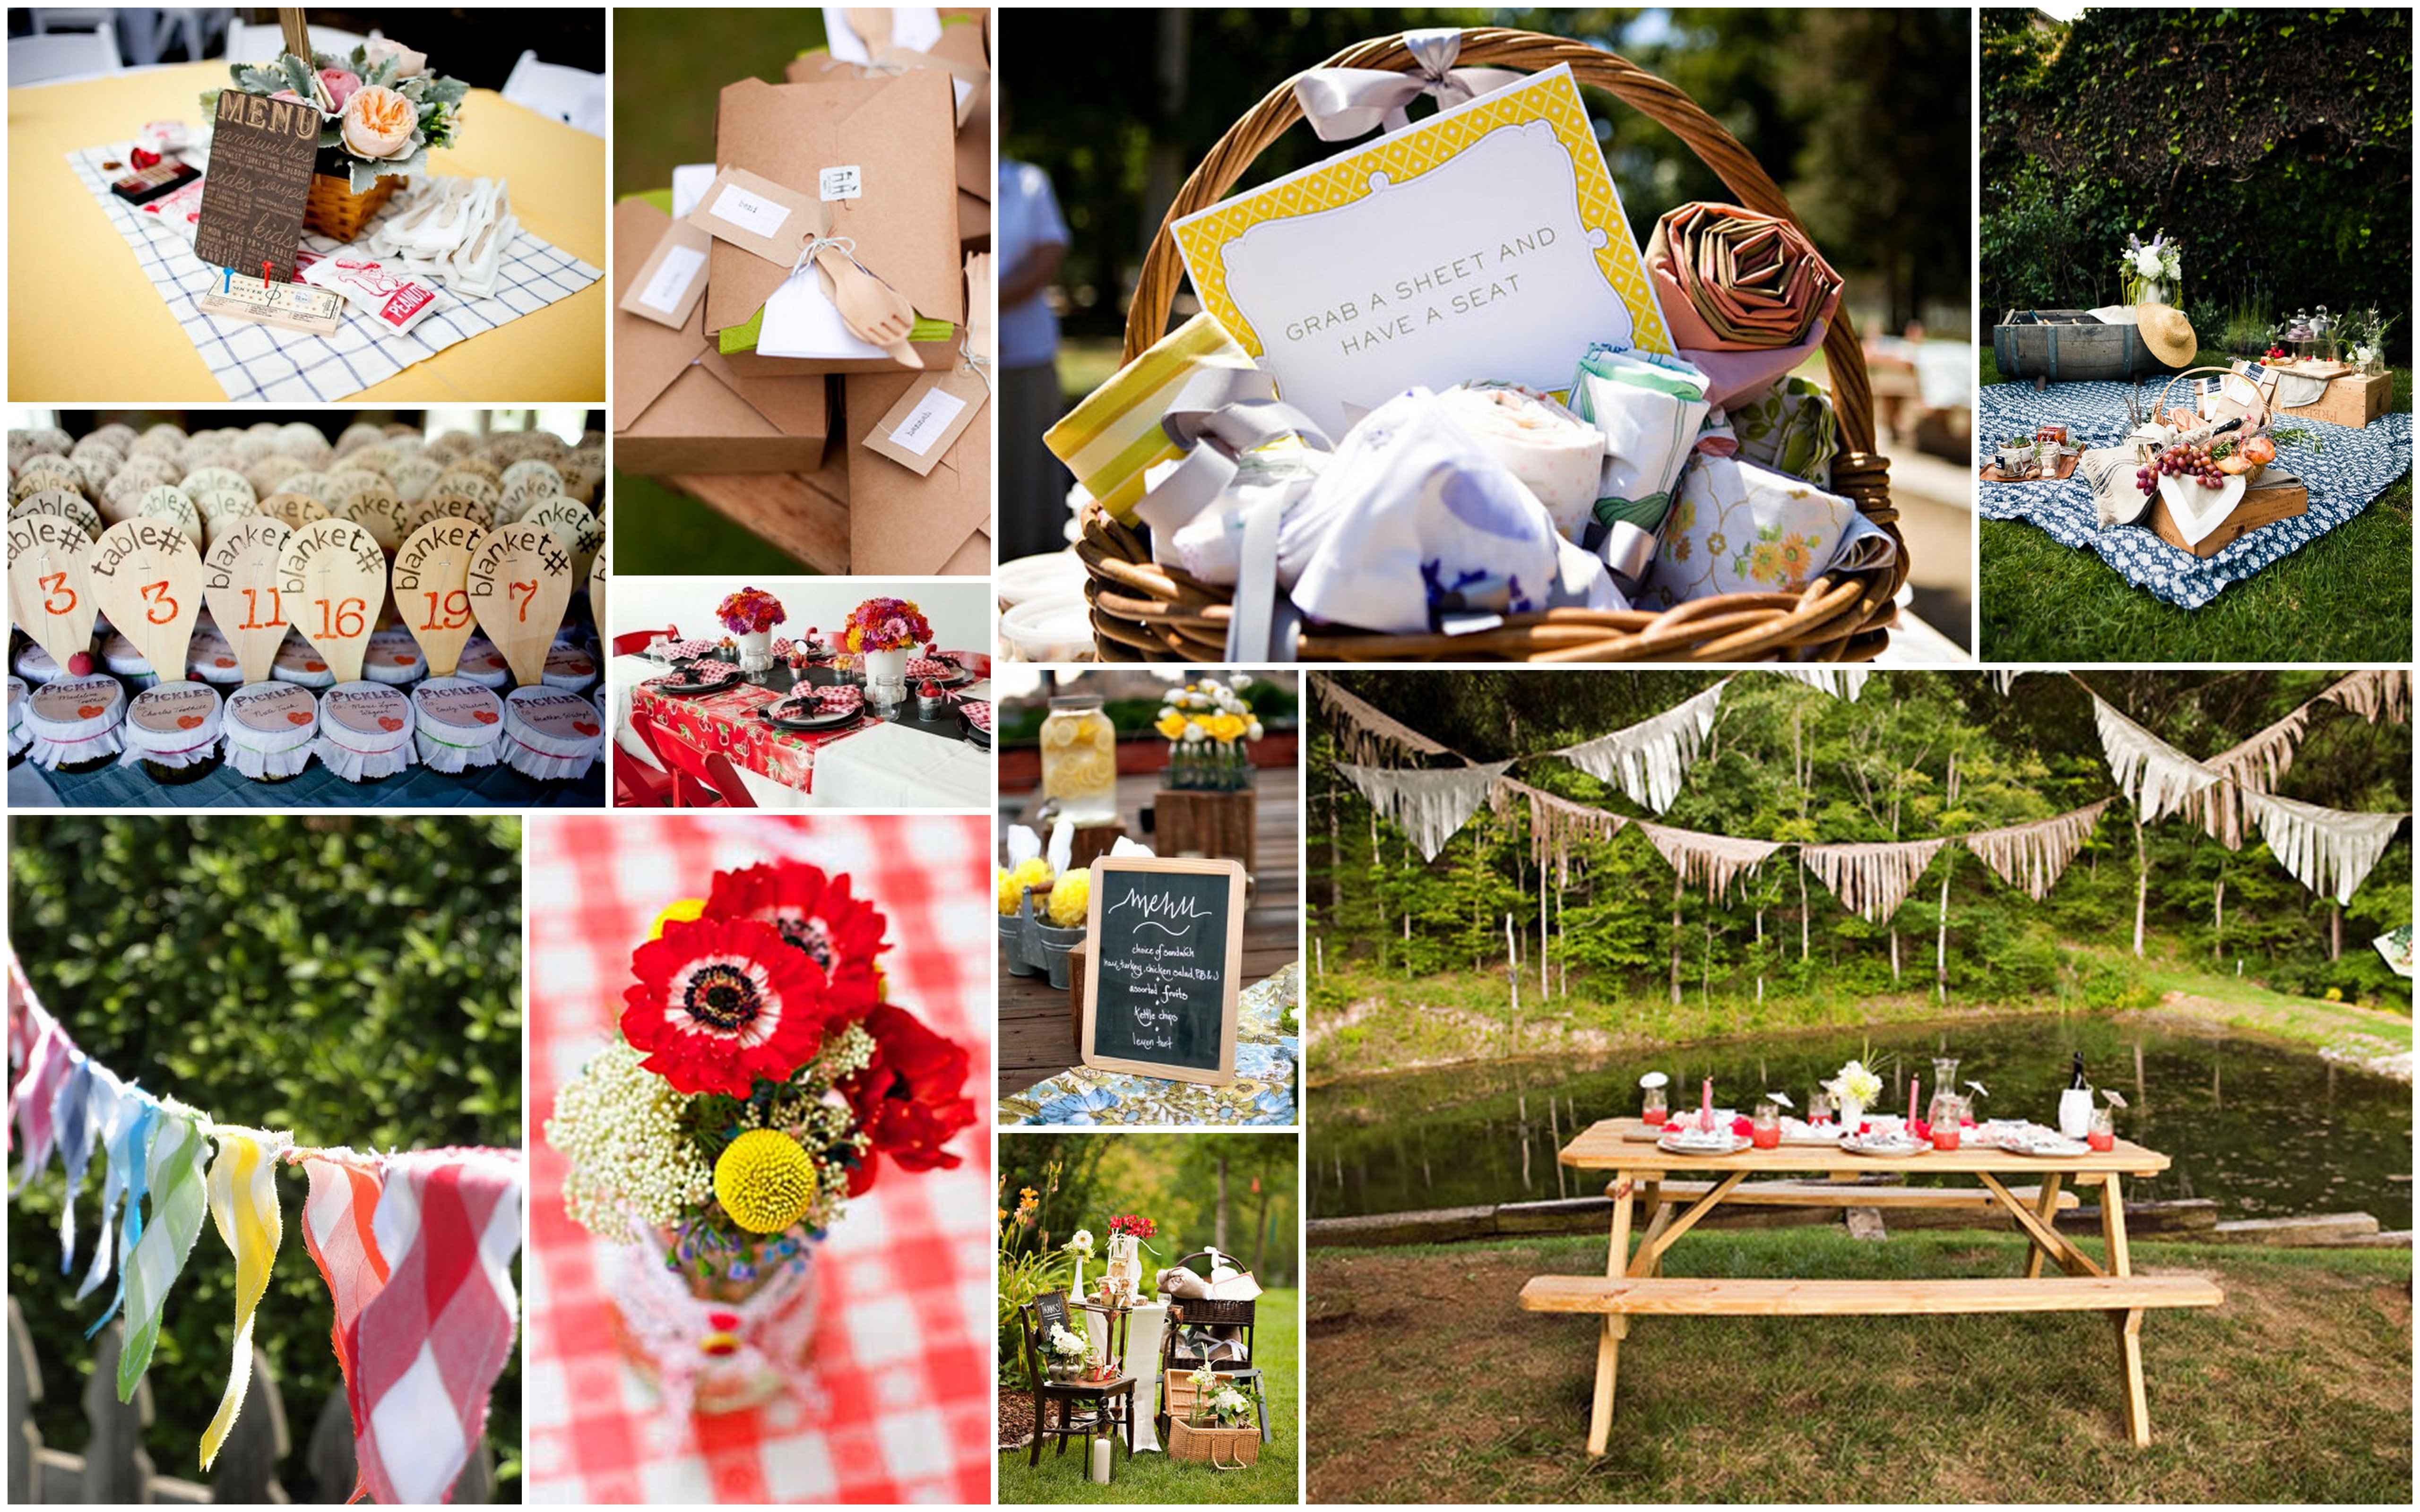 Picnic Themed Decorations In Love Engaged